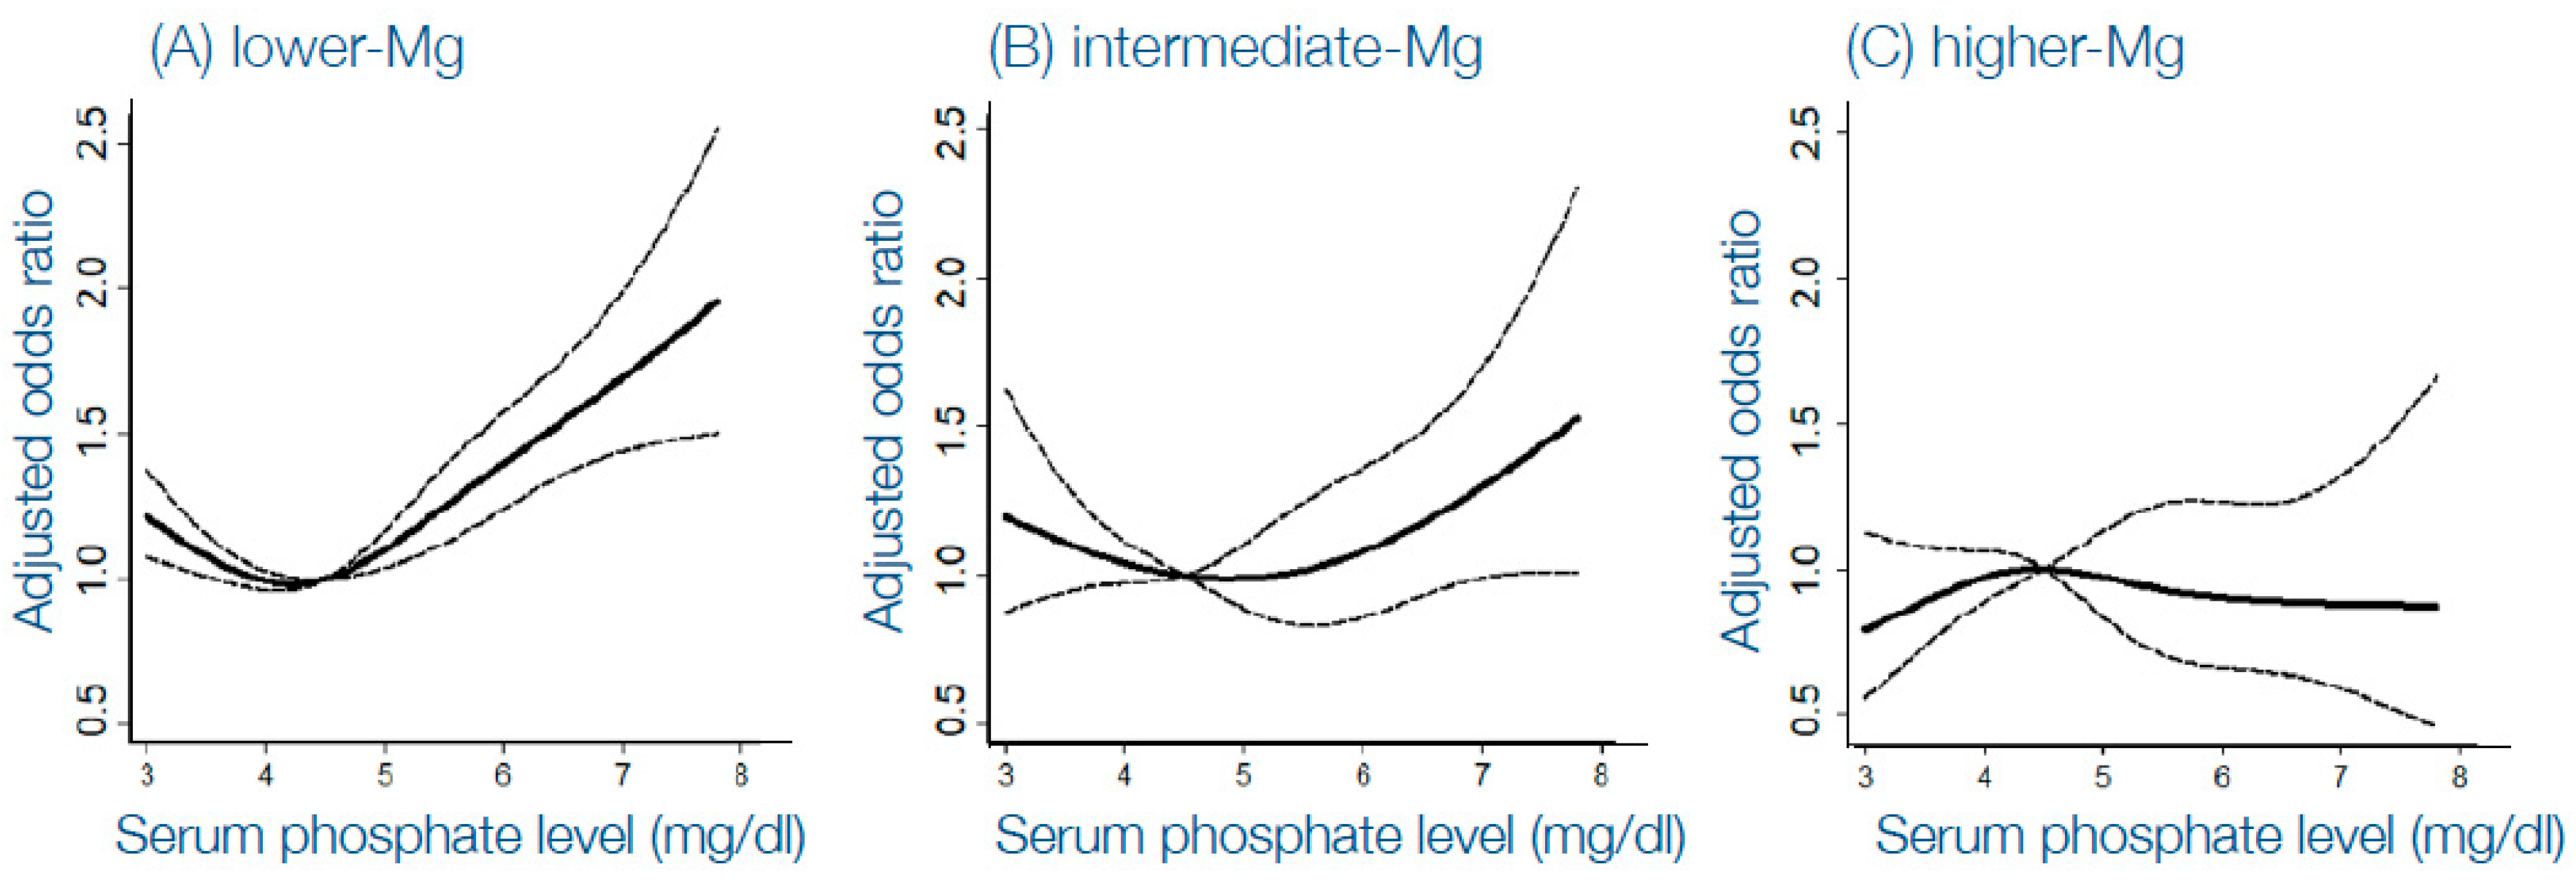 Toxins | Free Full-Text | Modifying Phosphate Toxicity in